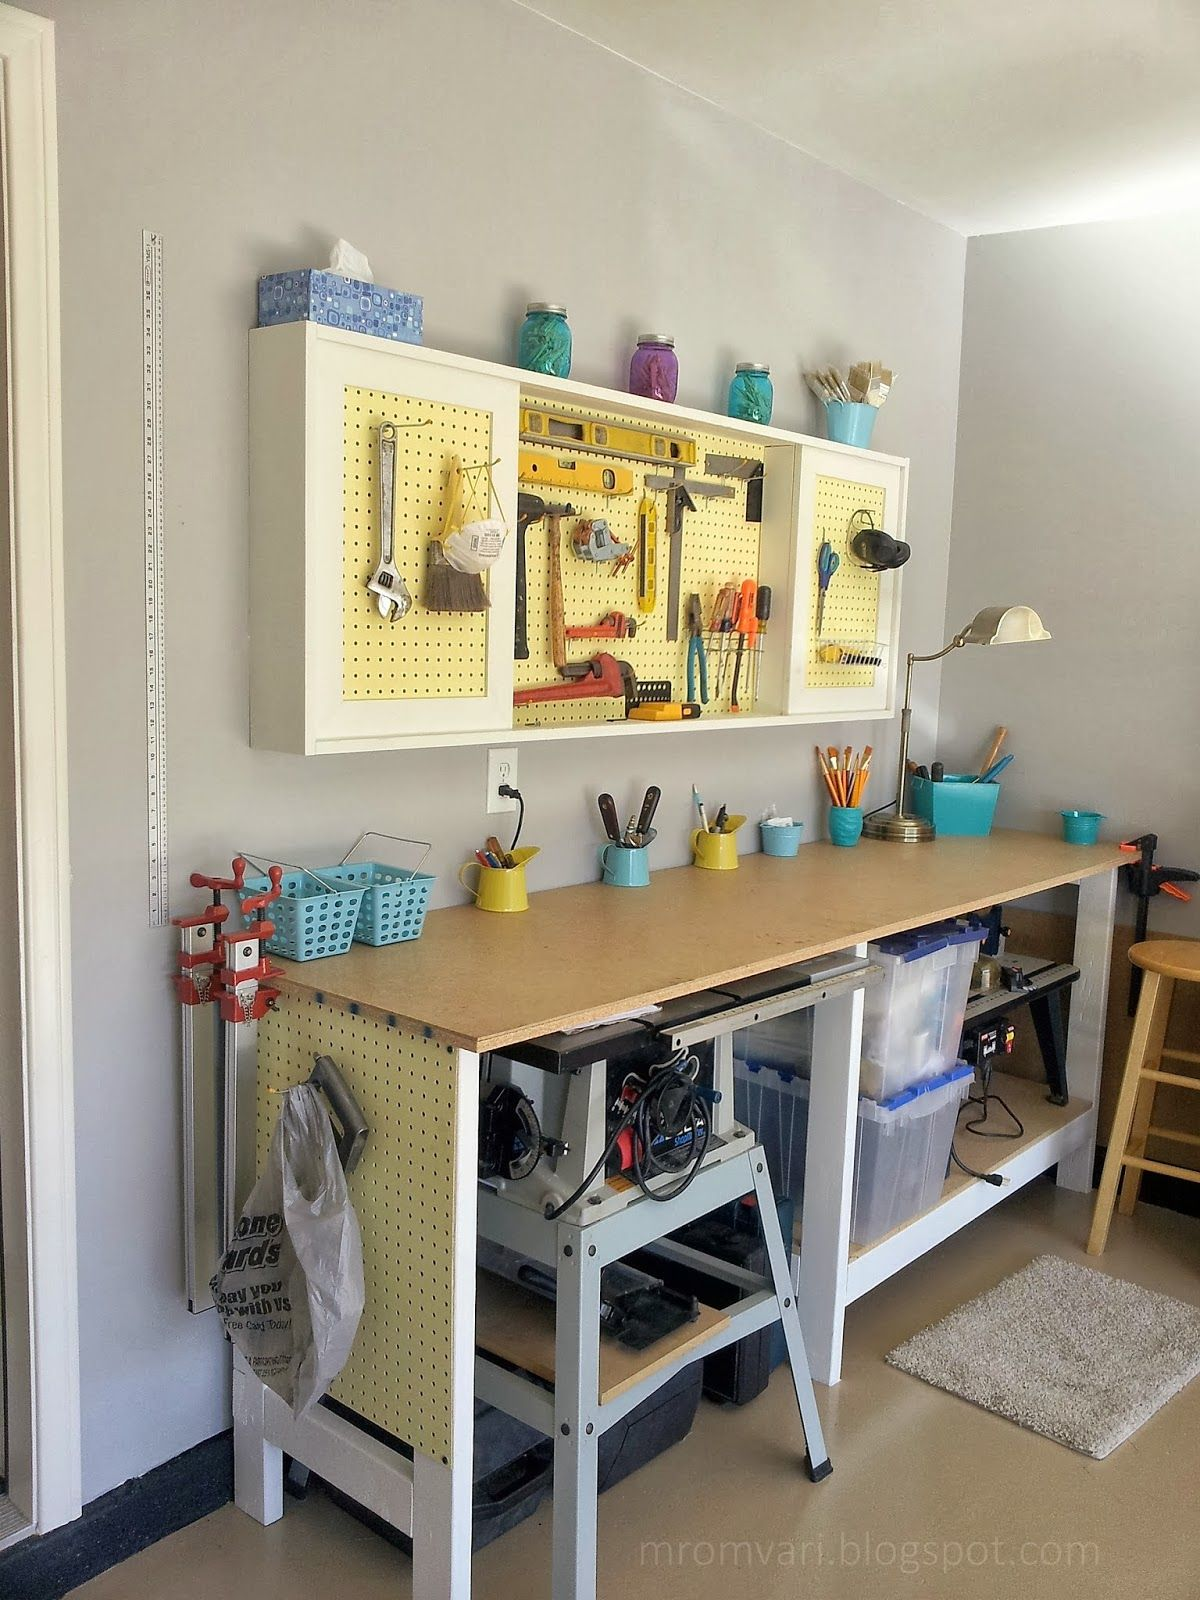 Diy Tutorial To Build A Workbench And Pegboard Tool Cabinet With